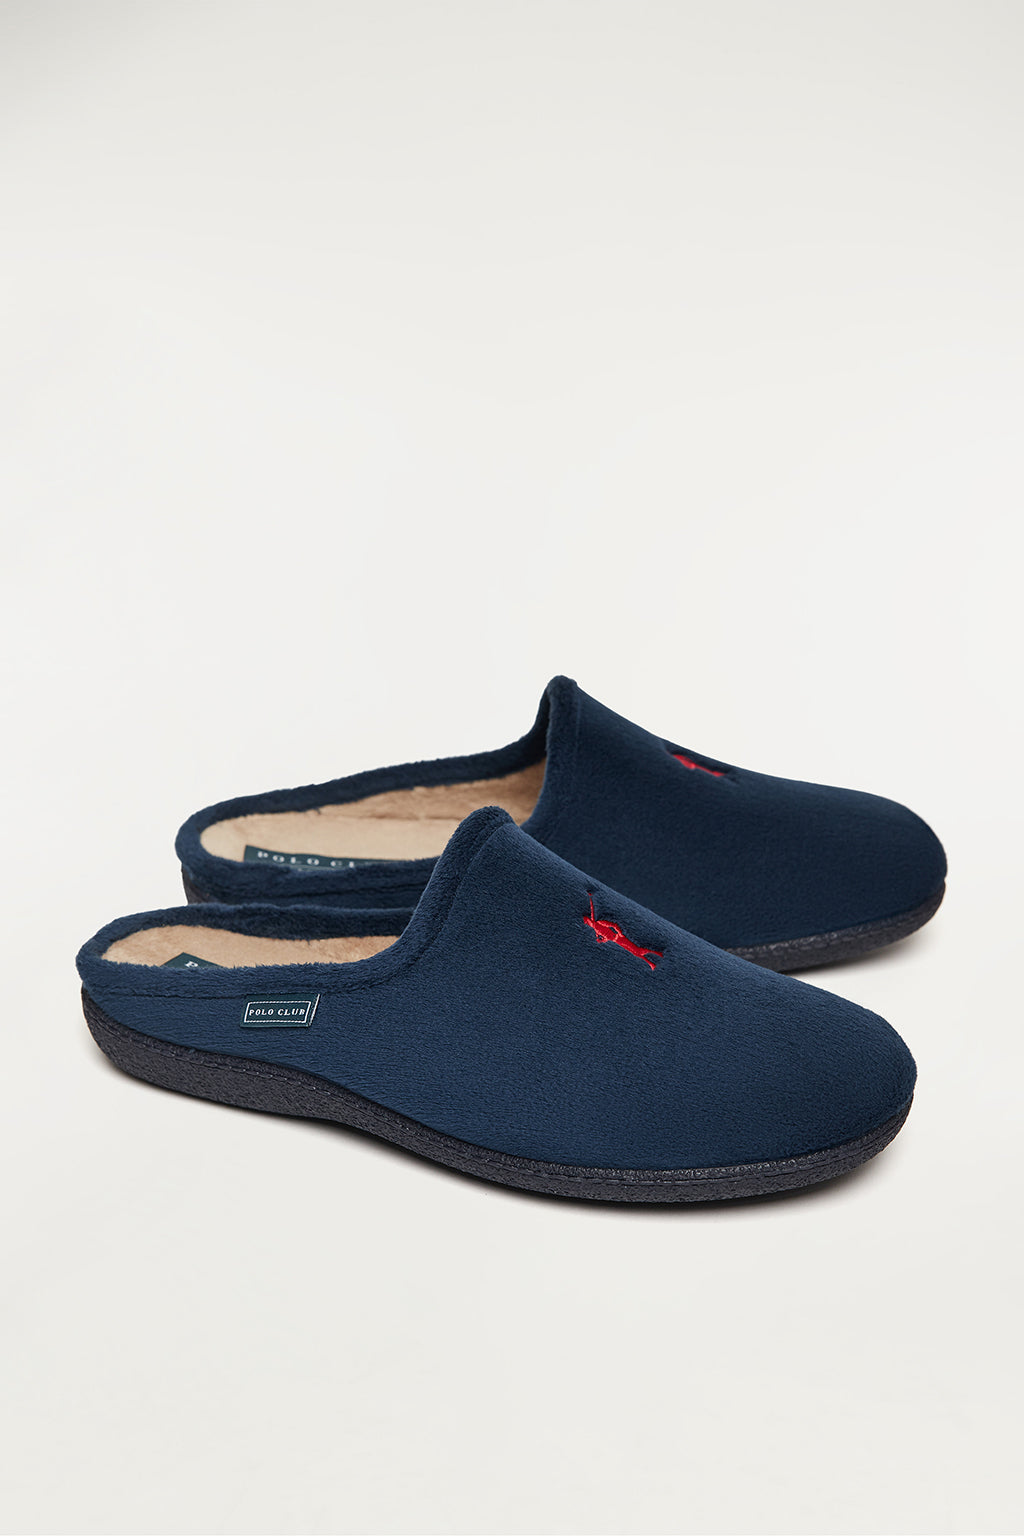 Navy blue sleepers with front embroidered logo in contrast colour